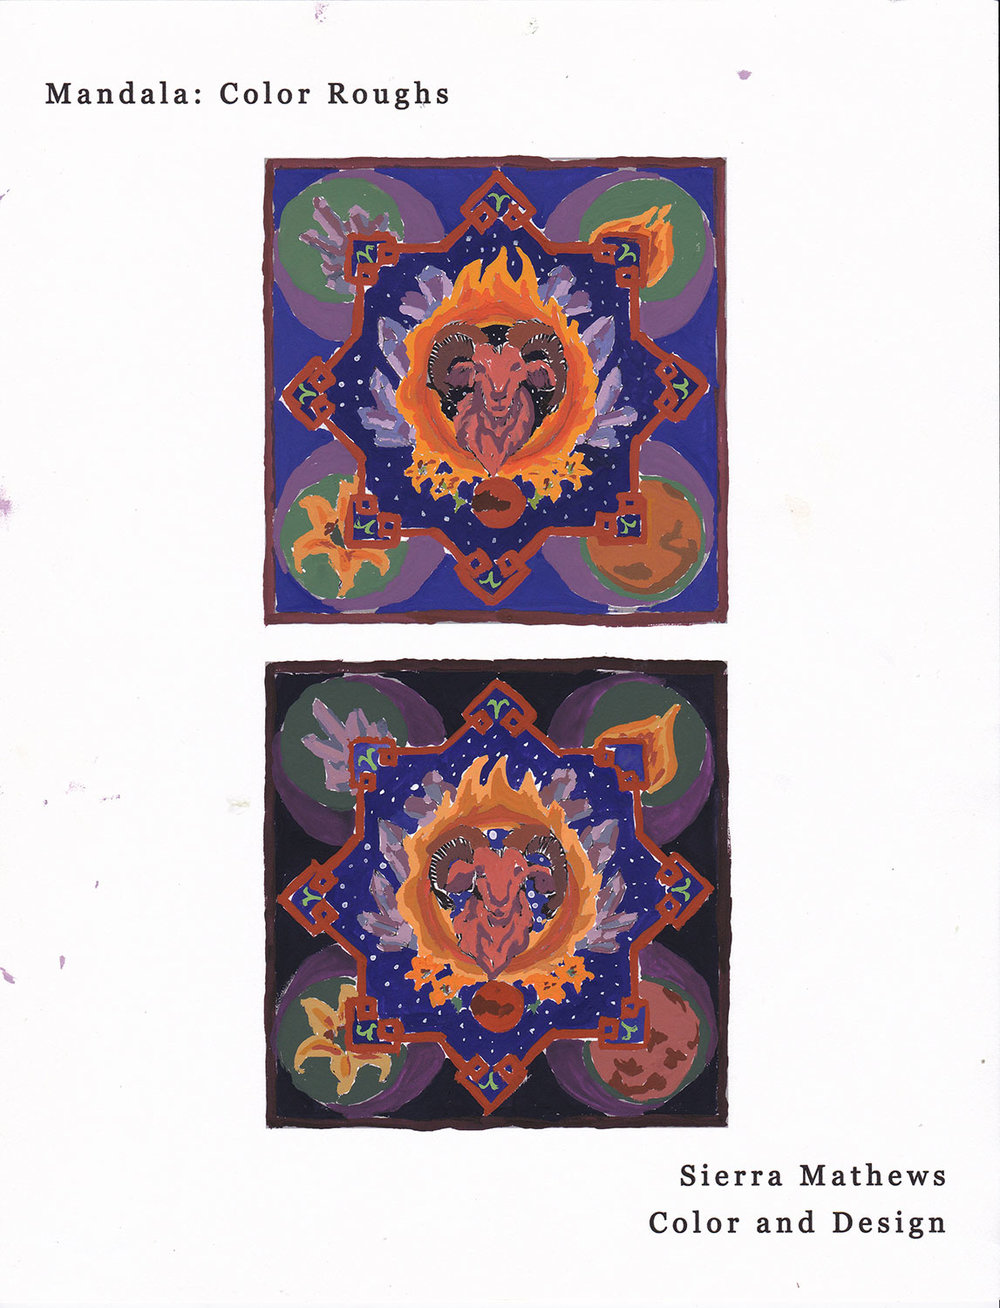 Mandala: Color Roughs